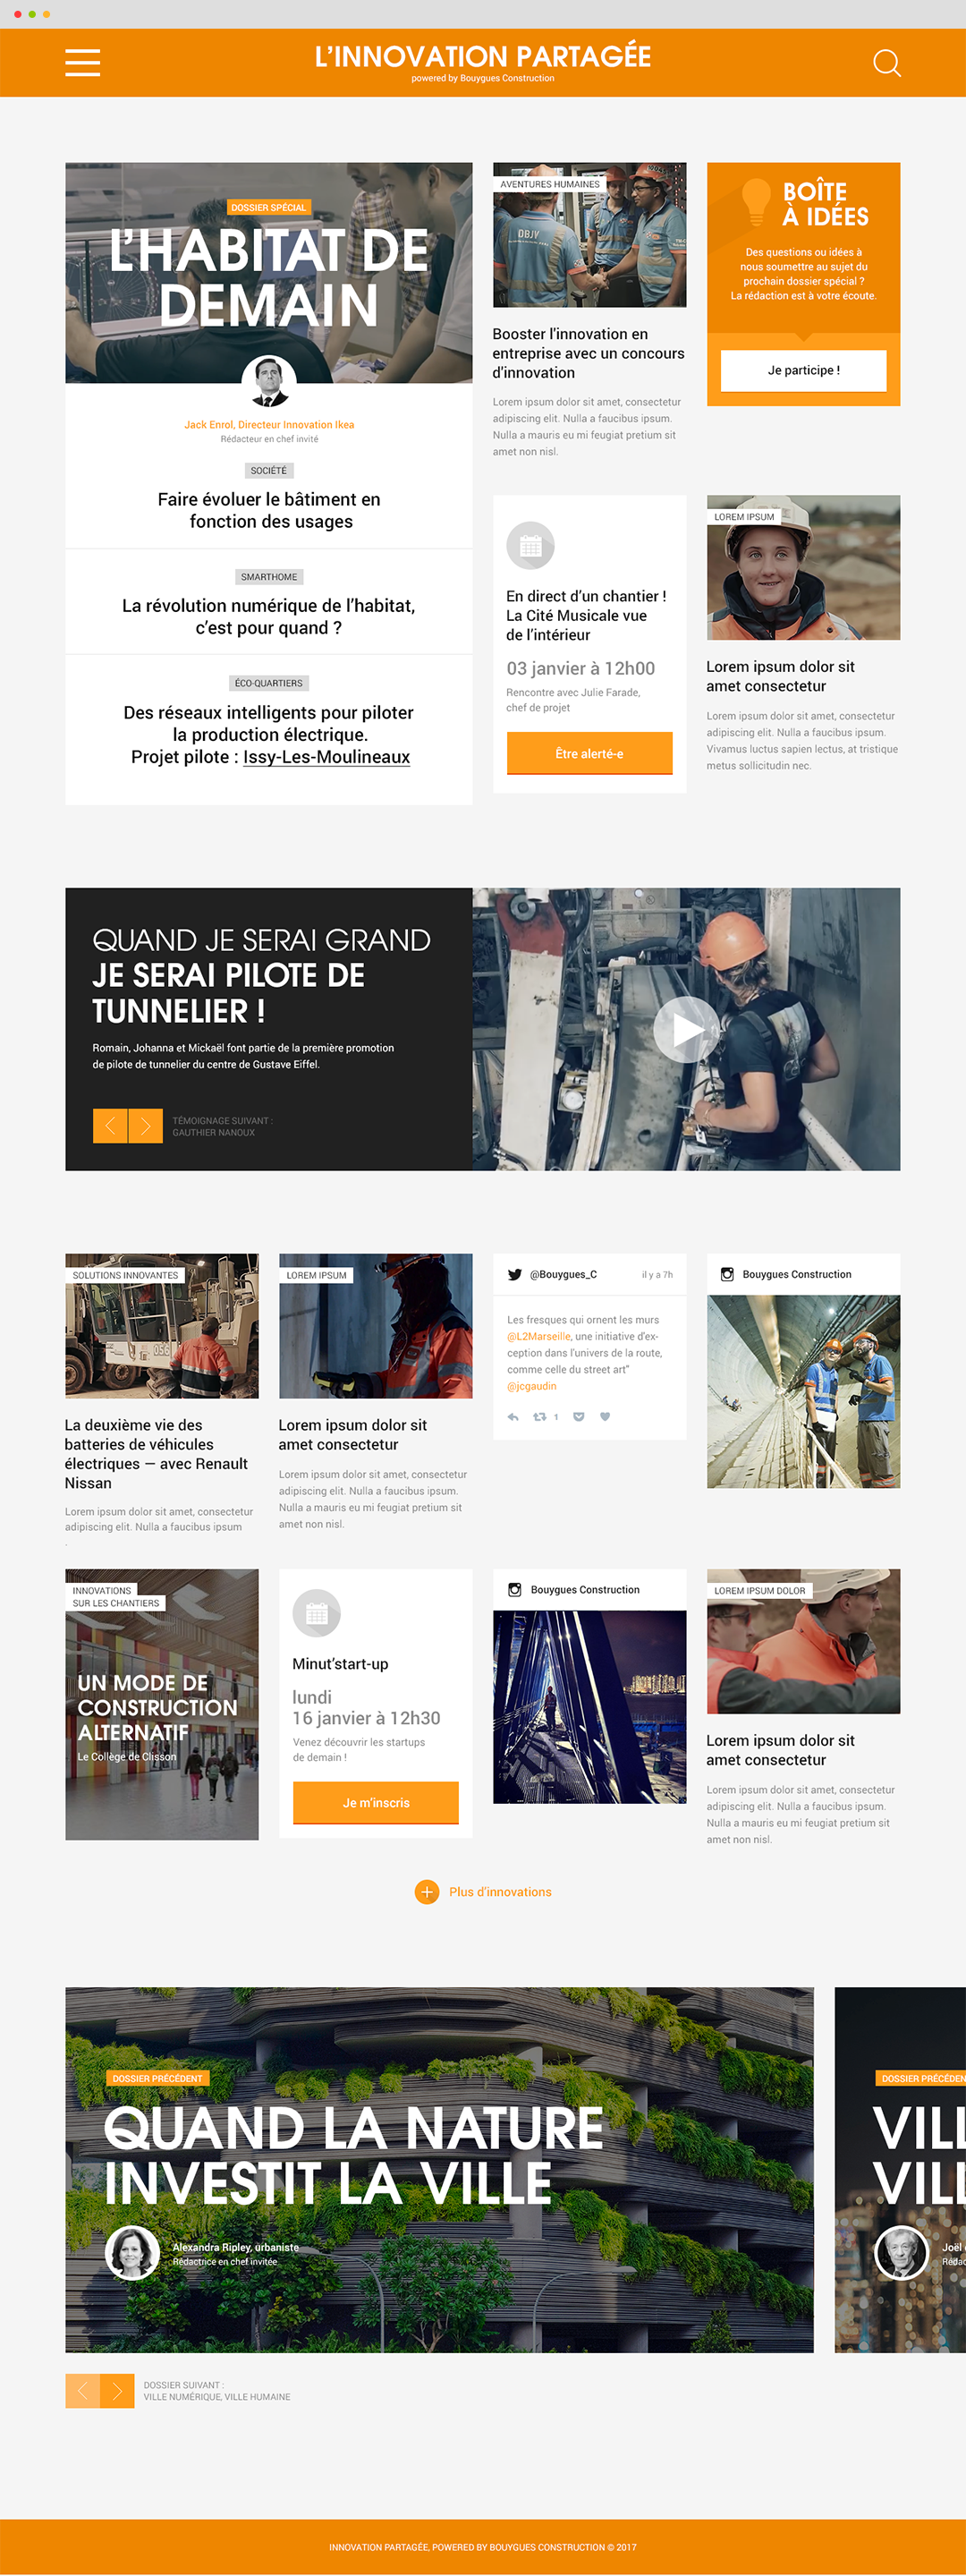 Mpetrucci_InnovationPartagee_by_Bouygues.png